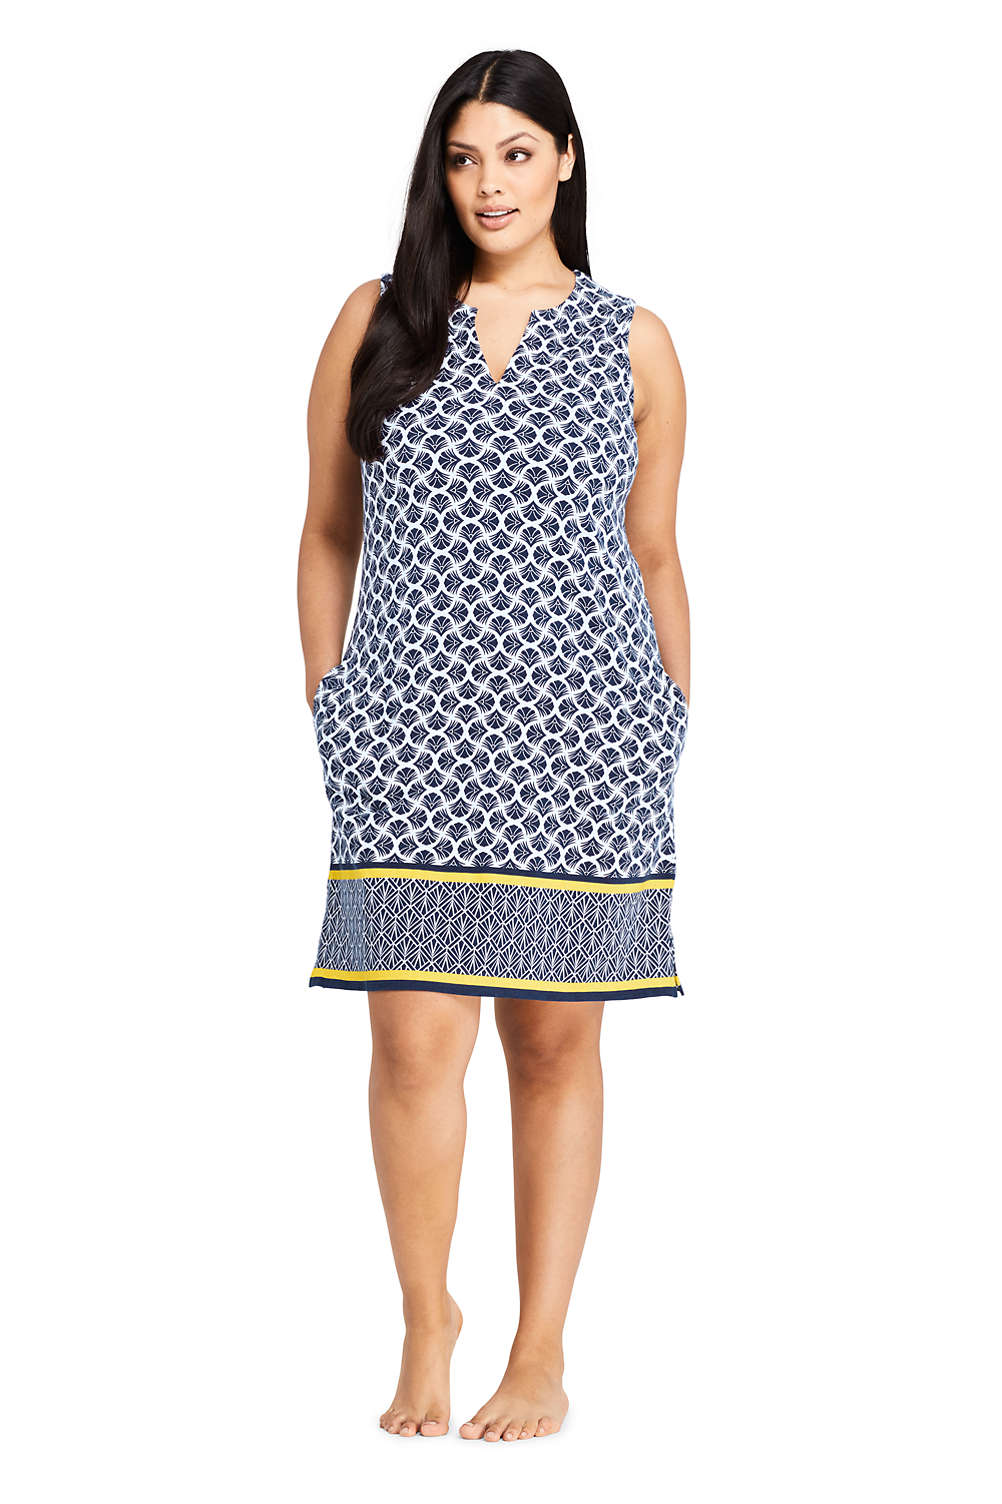 ffb6a65abf Women's Plus Size Cotton Jersey Sleeveless Swim Cover-up Dress Print from  Lands' End